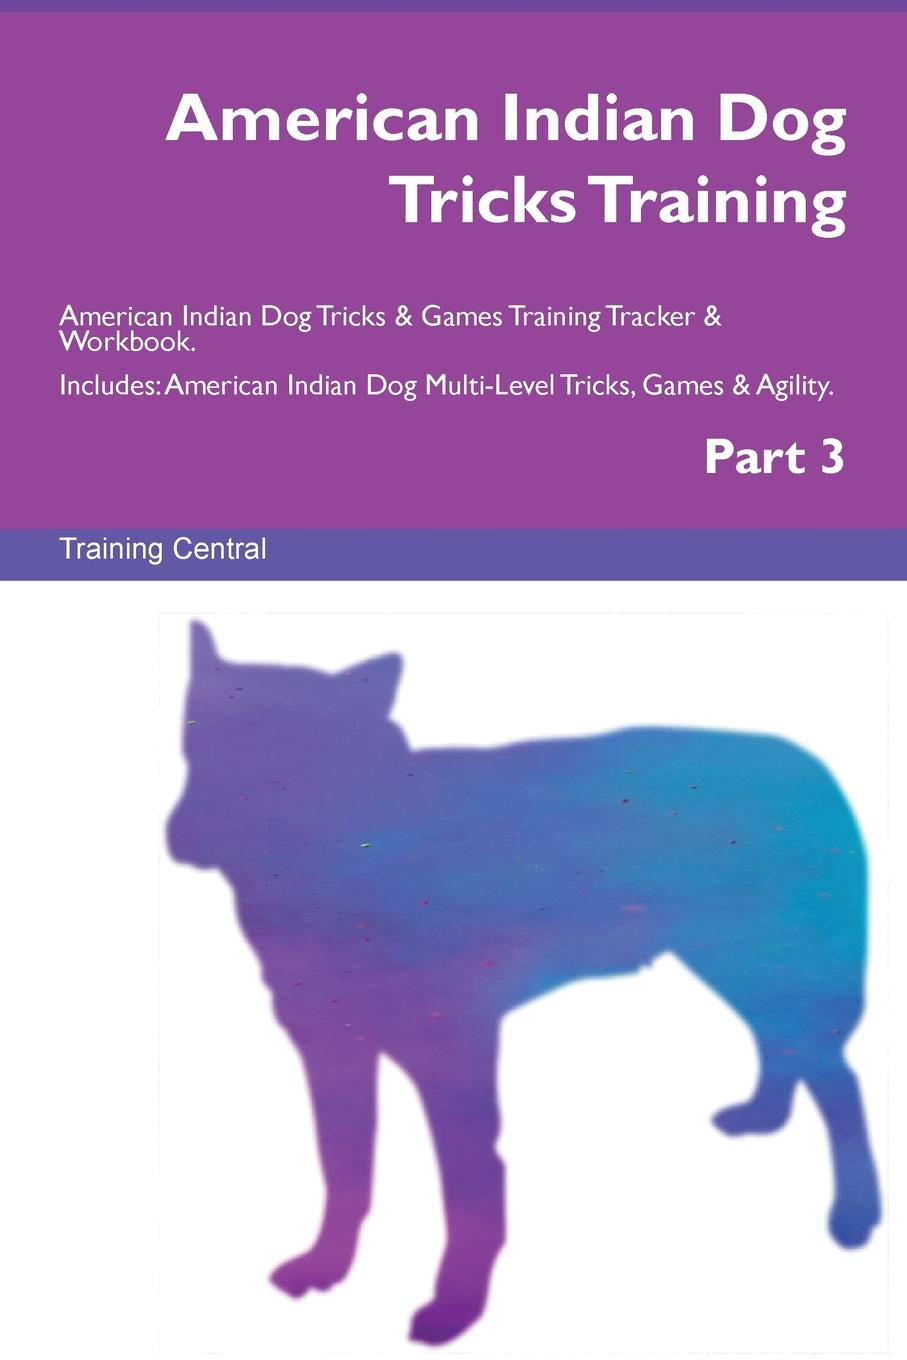 Training Central American Indian Dog Tricks Training American Indian Dog Tricks . Games Training Tracker . Workbook. Includes. American Indian Dog Multi-Level Tricks, Games . Agility. Part 3 elizabeth rae kovar finding om an indian journey of rickshaws chai chapattis gurus